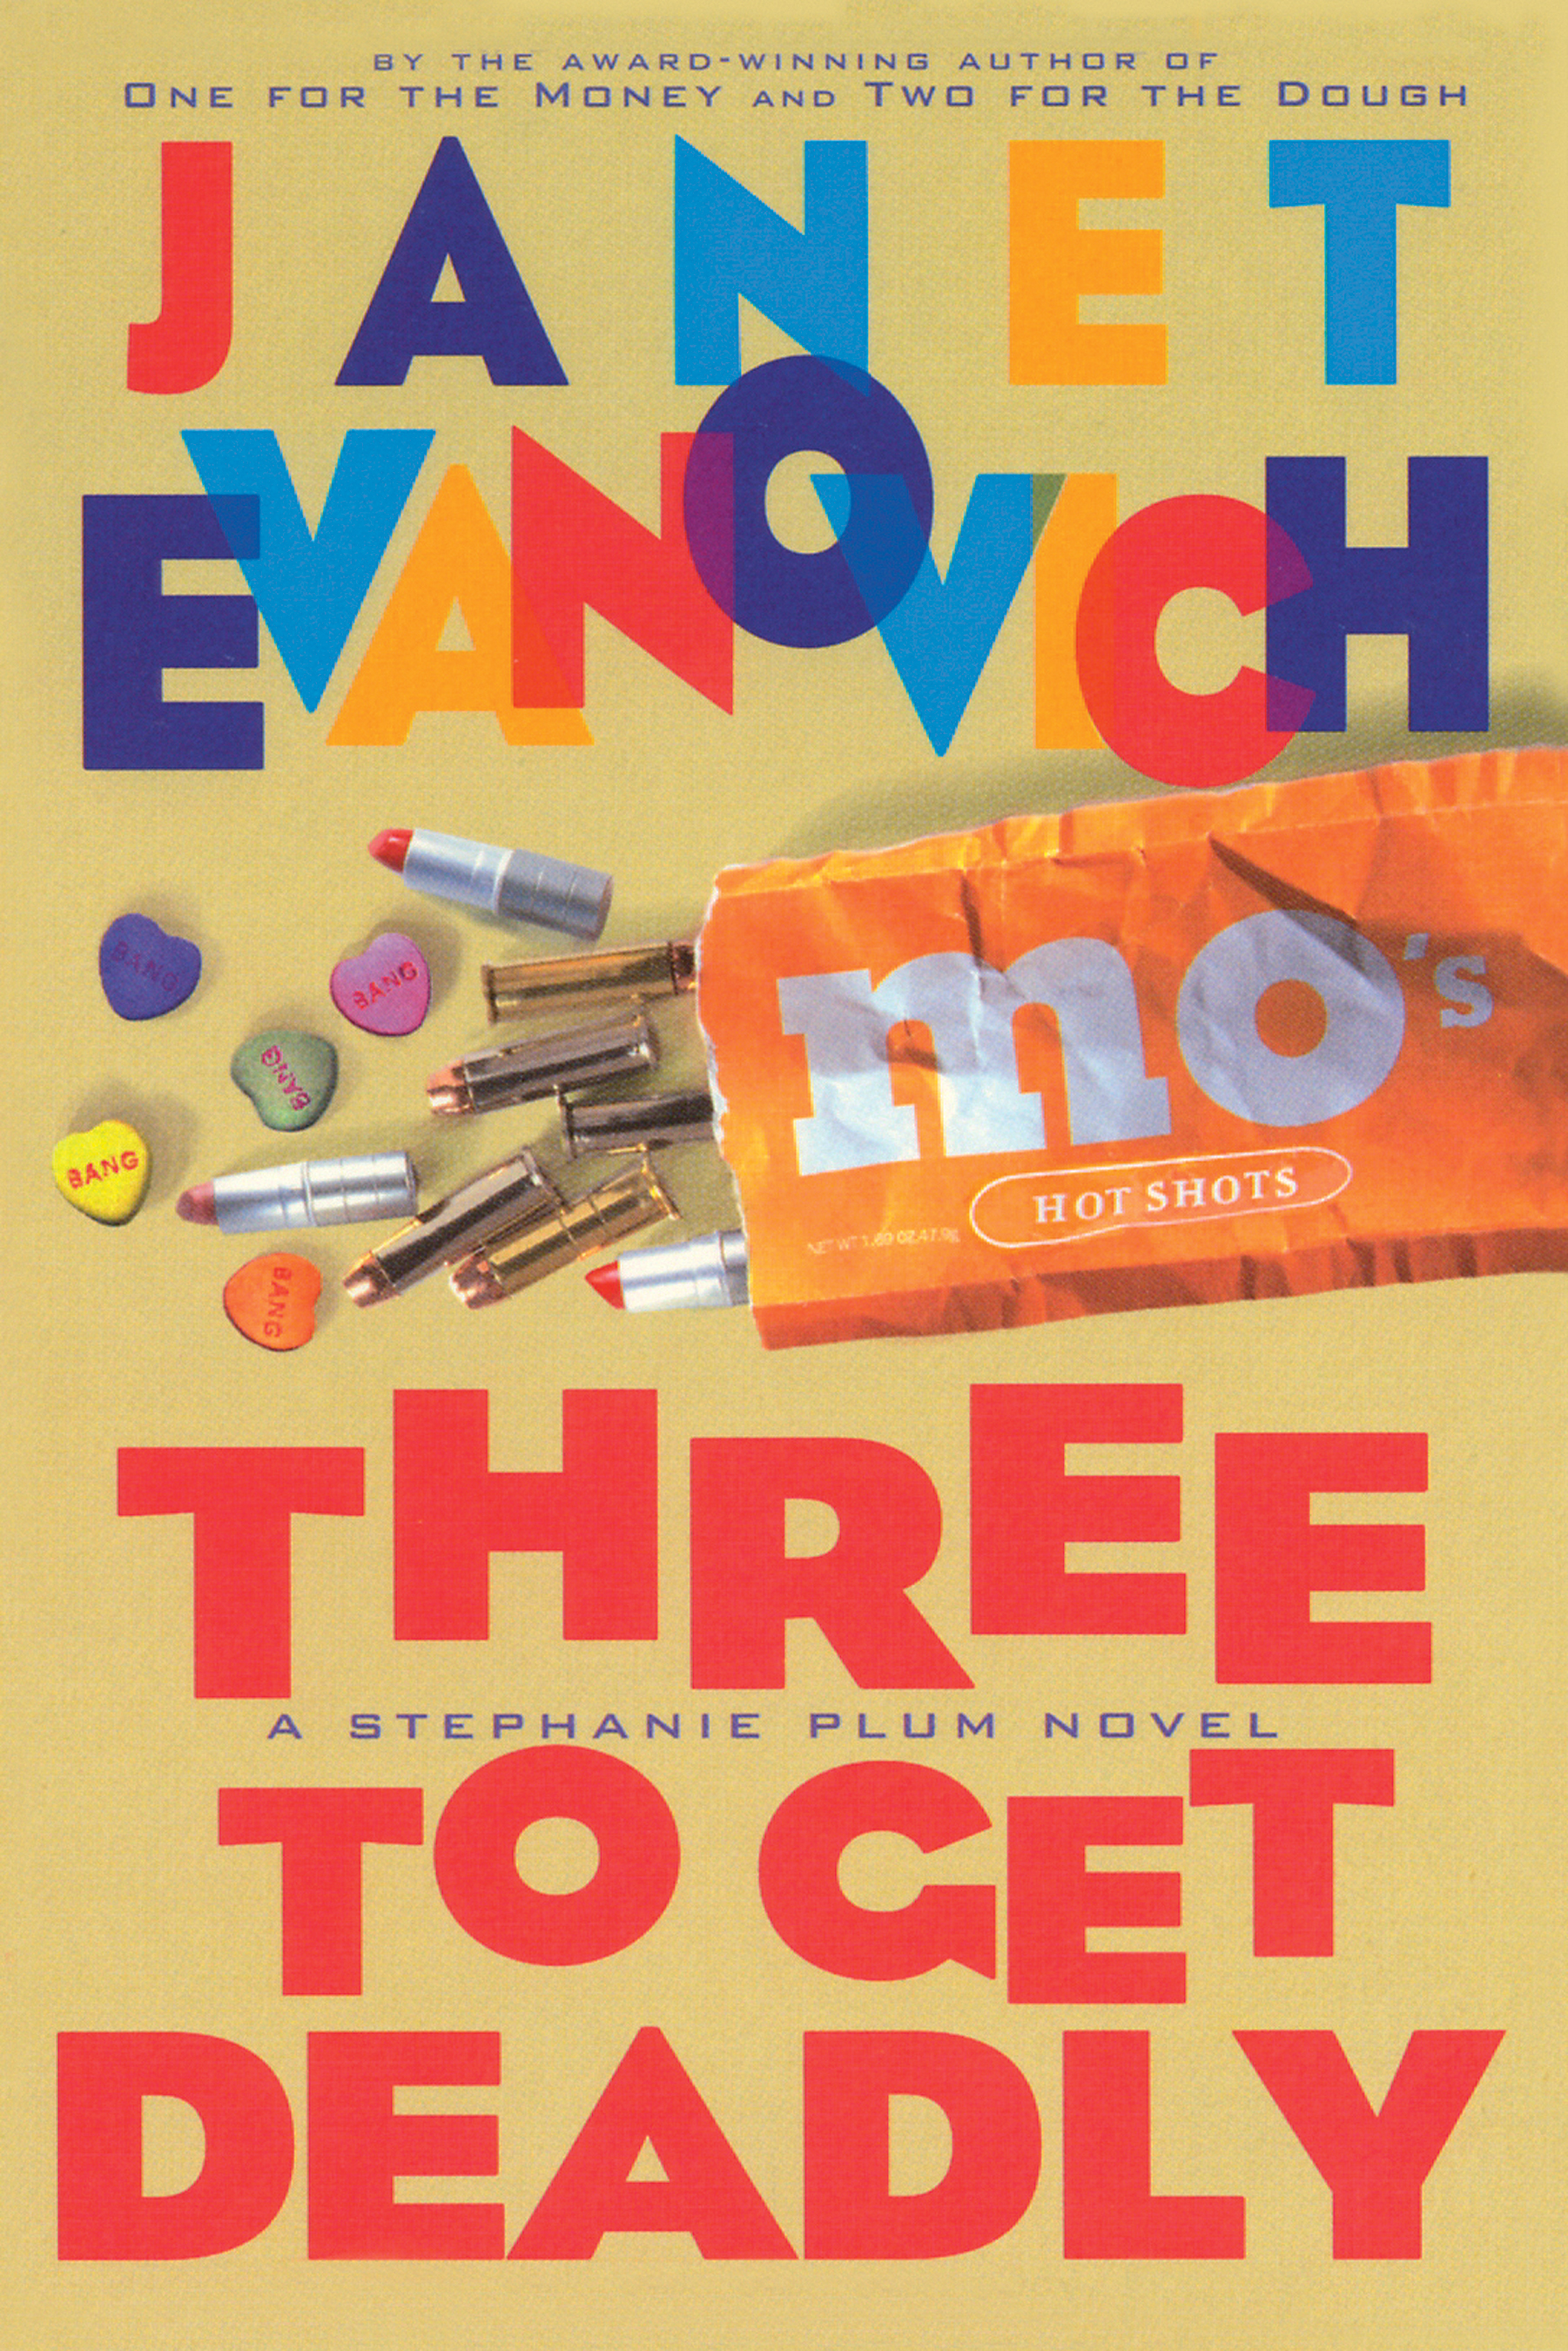 By Janet Evanovich Three To Get Deadly